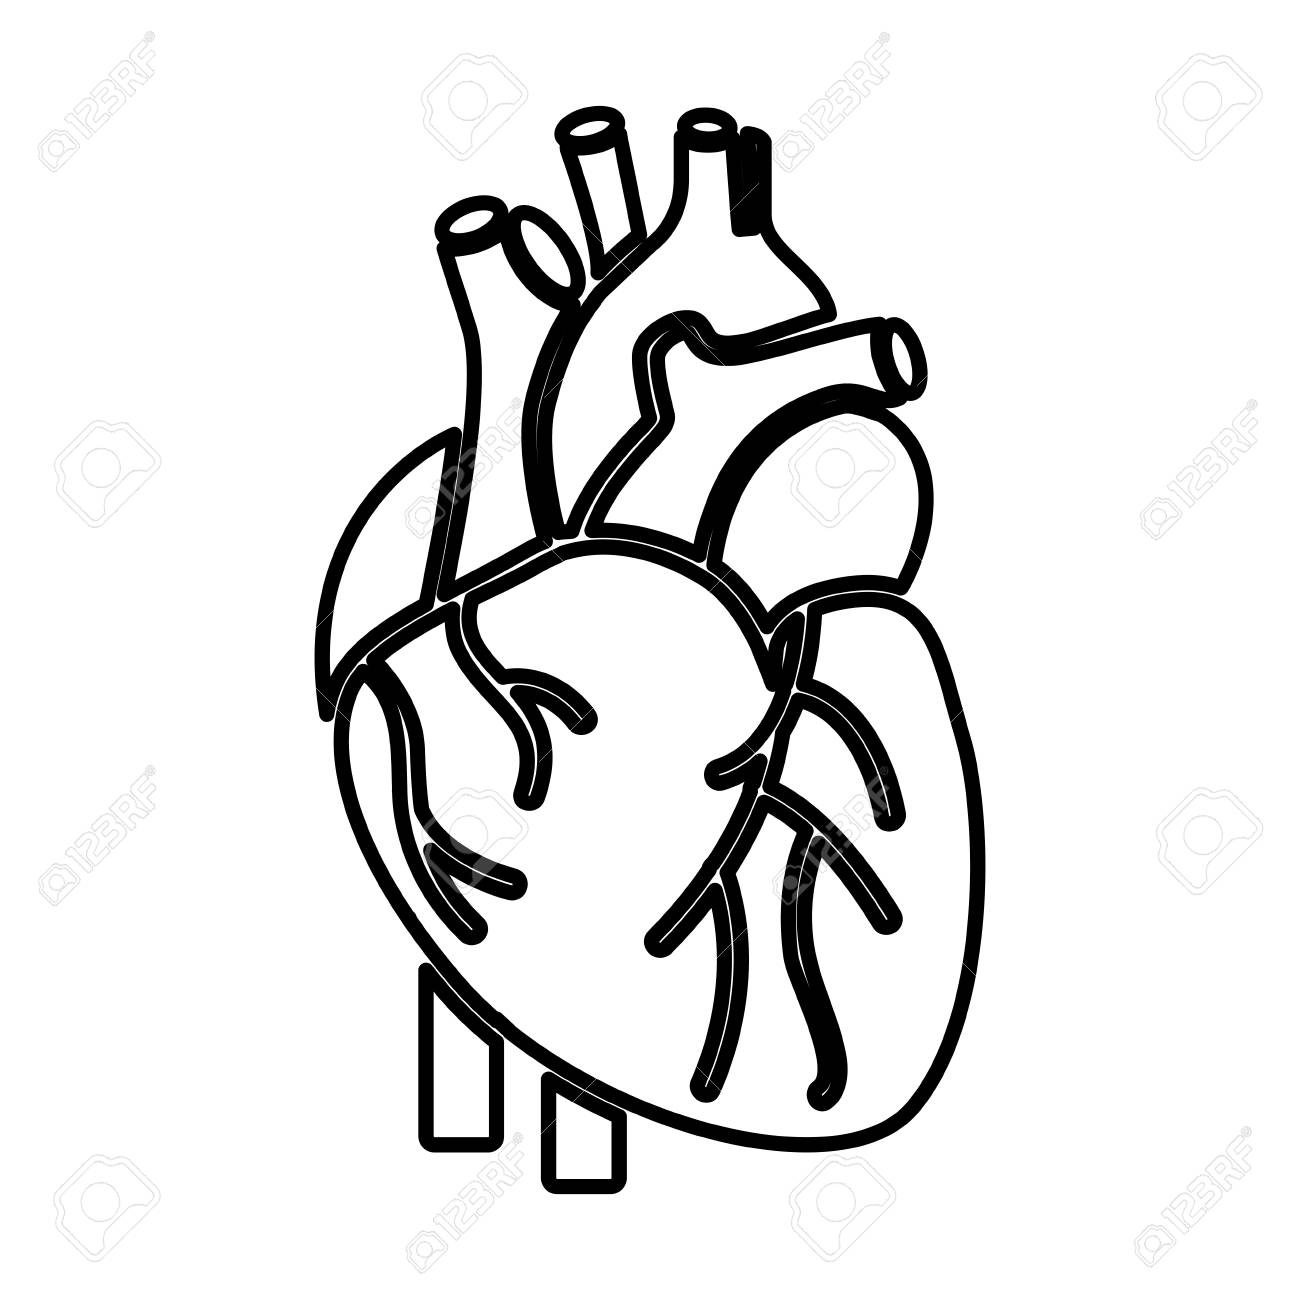 Blank label human heart clipart black and white clipart stock Human Heart Clipart Black And White | Free download best Human Heart ... clipart stock